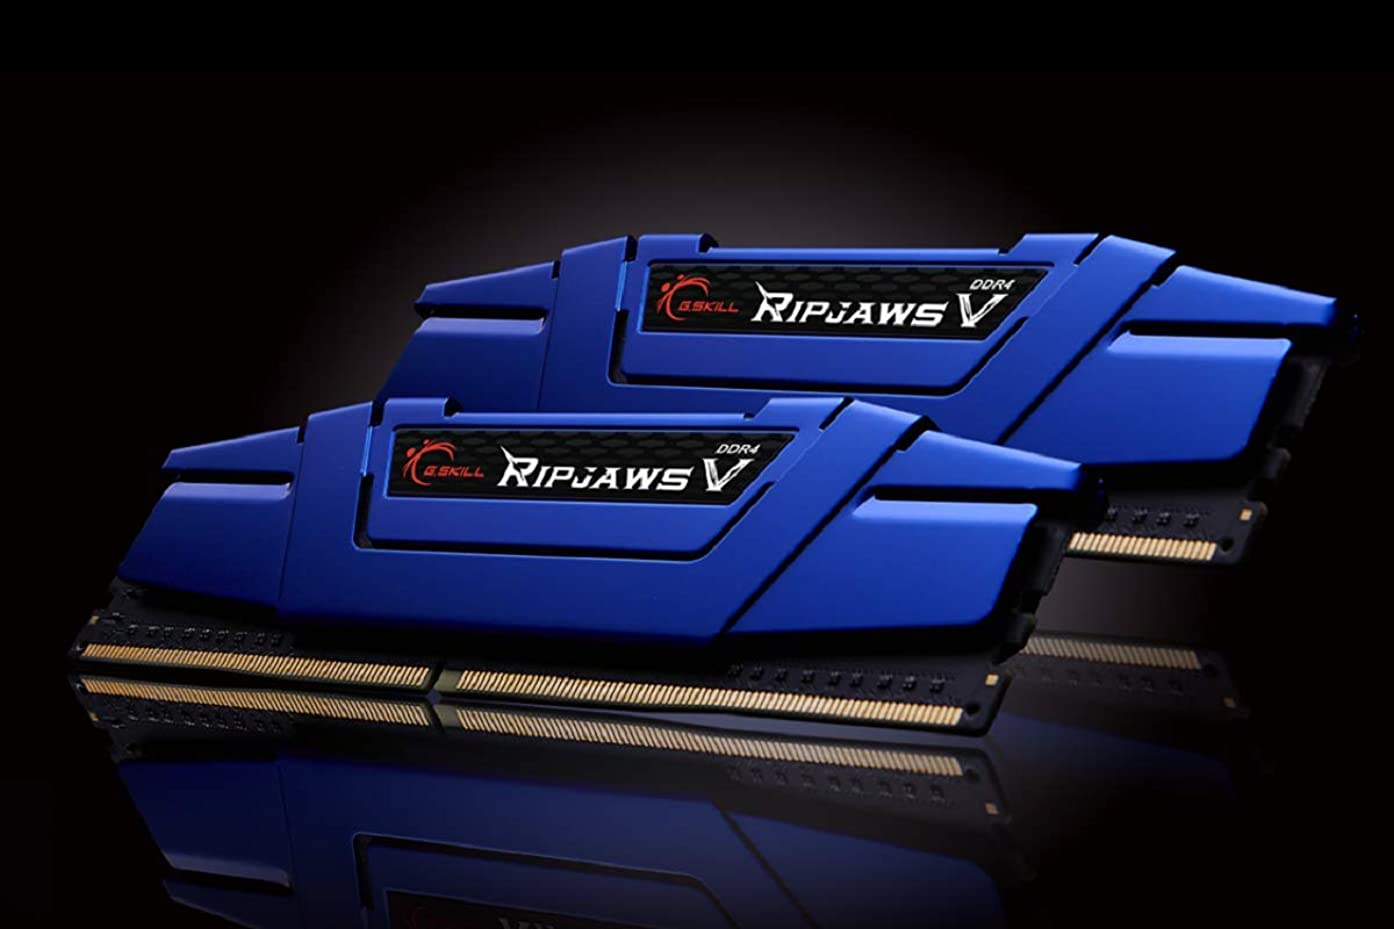 G.Skill 16GB DDR4 PC4-19200 2400MHz Ripjaws V CL15 Dual Channel kit (2x8GB) 1.20V Blue